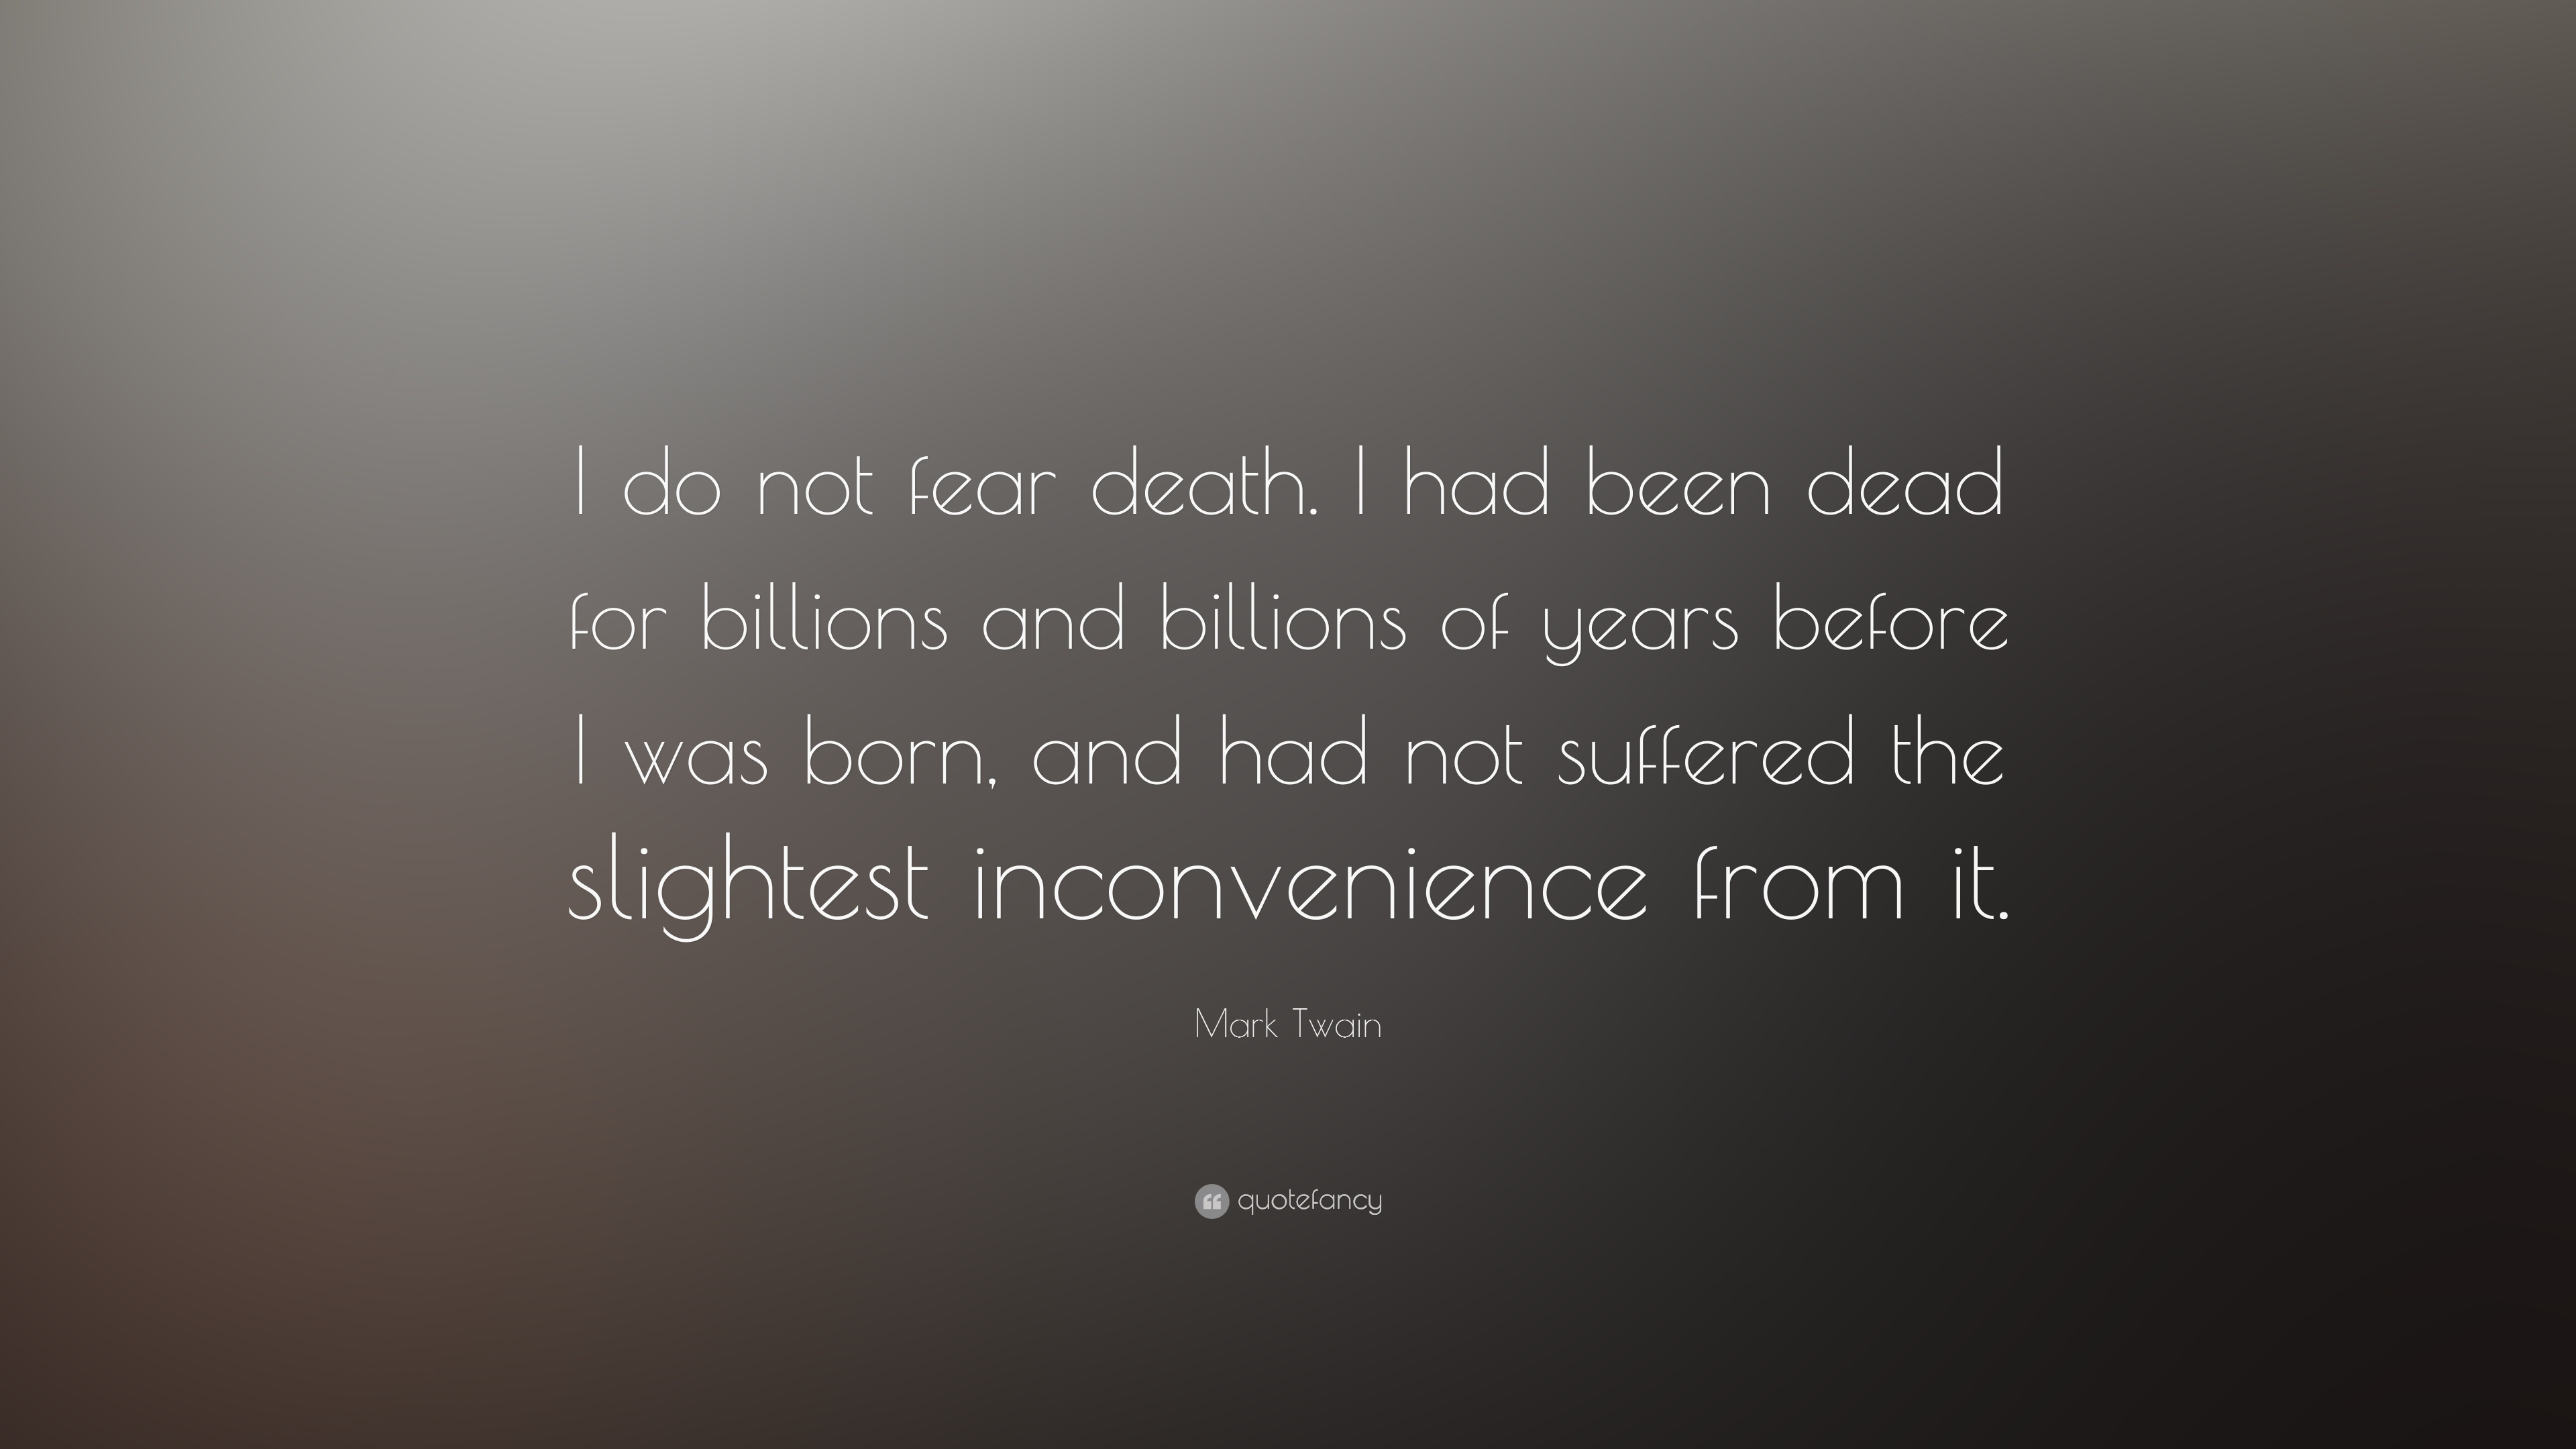 New Years Quotes And Sayings Wallpapers Mark Twain Quote I Do Not Fear Death I Had Been Dead